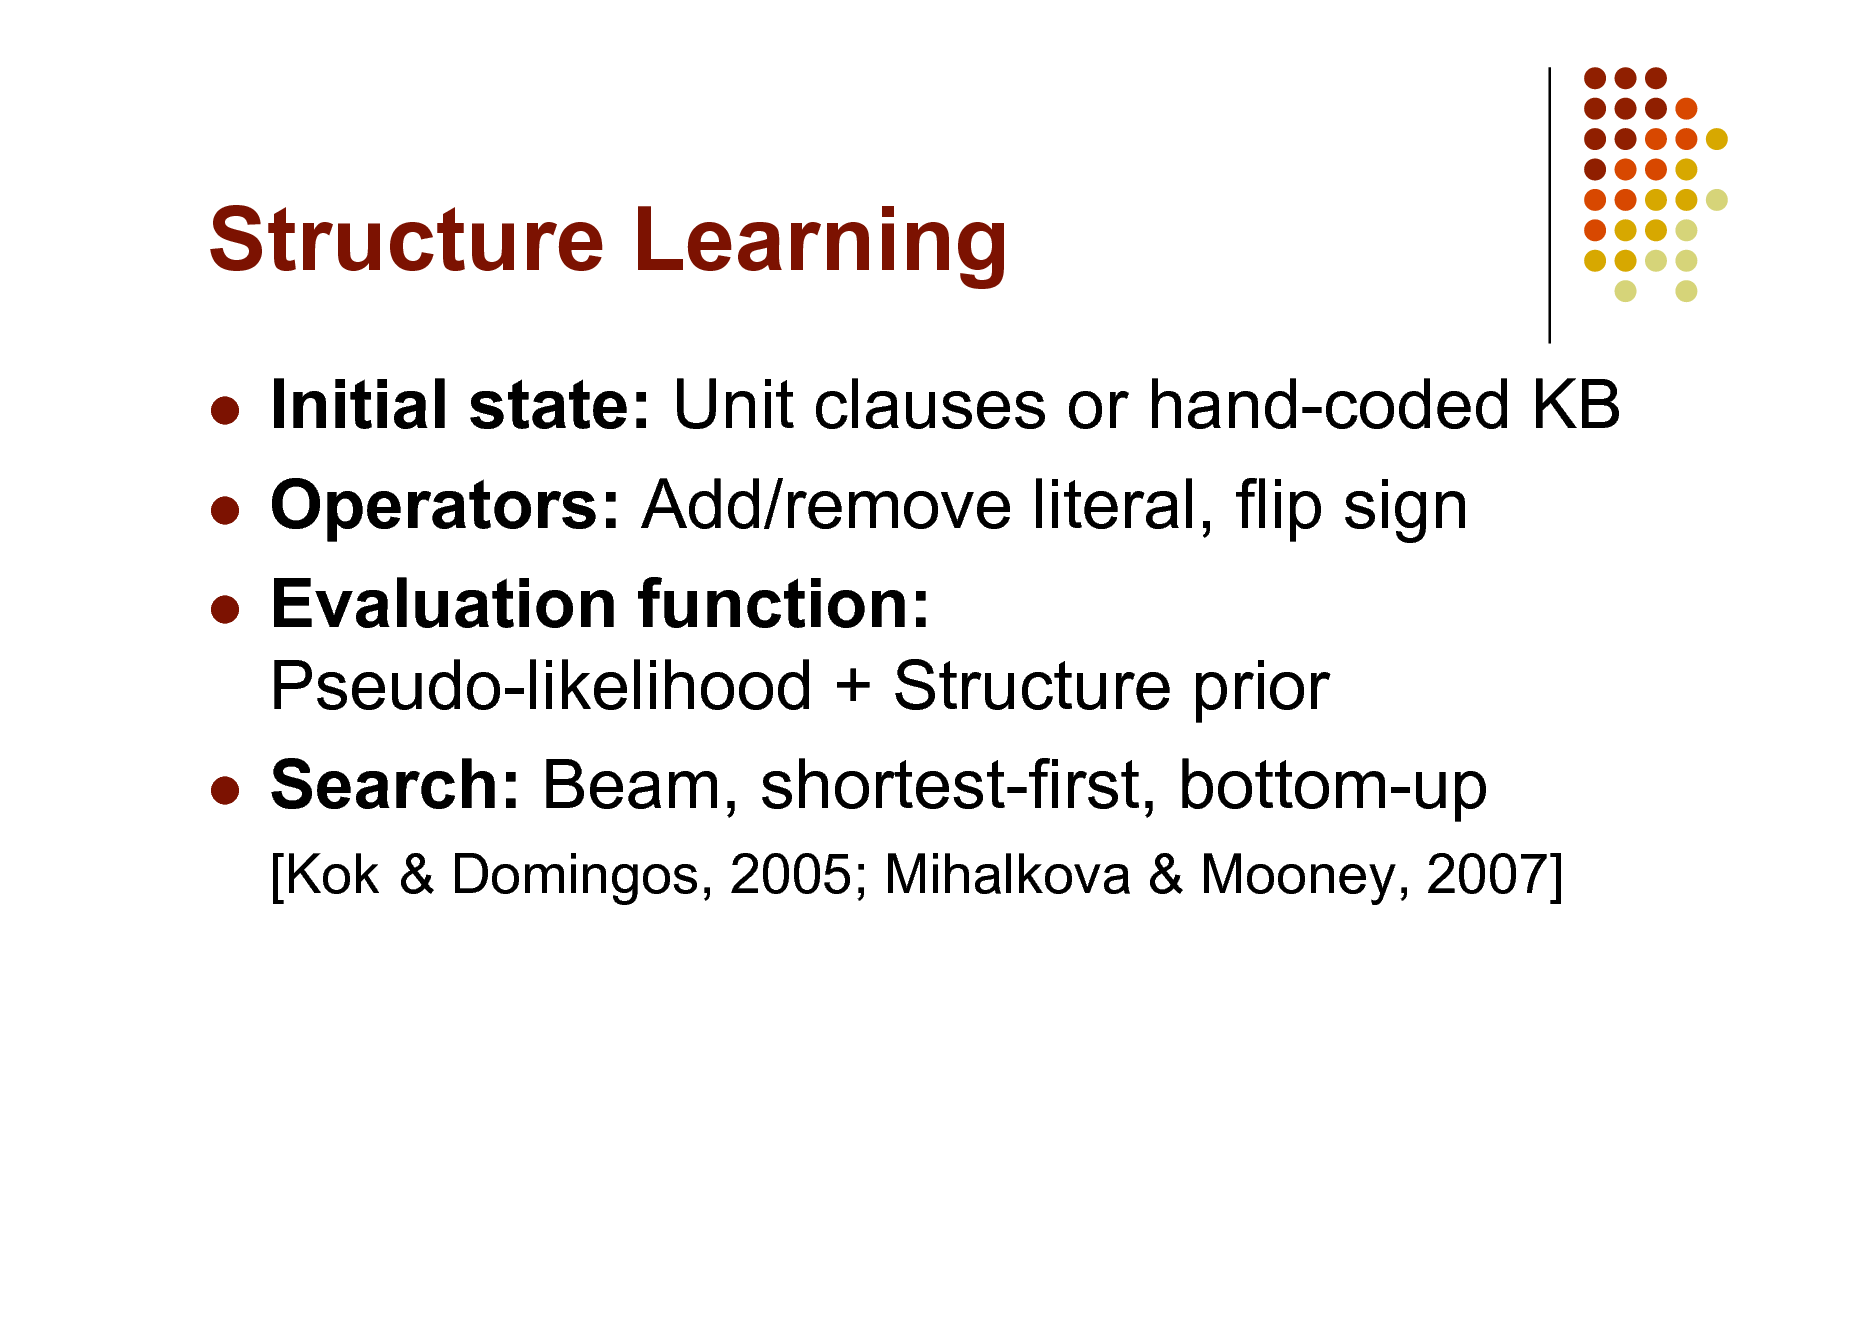 Slide: Structure Learning Initial state: Unit clauses or hand-coded KB  Operators: Add/remove literal, flip sign  Evaluation function: Pseudo-likelihood + Structure prior  Search: Beam, shortest-first, bottom-up   [Kok & Domingos, 2005; Mihalkova & Mooney, 2007]